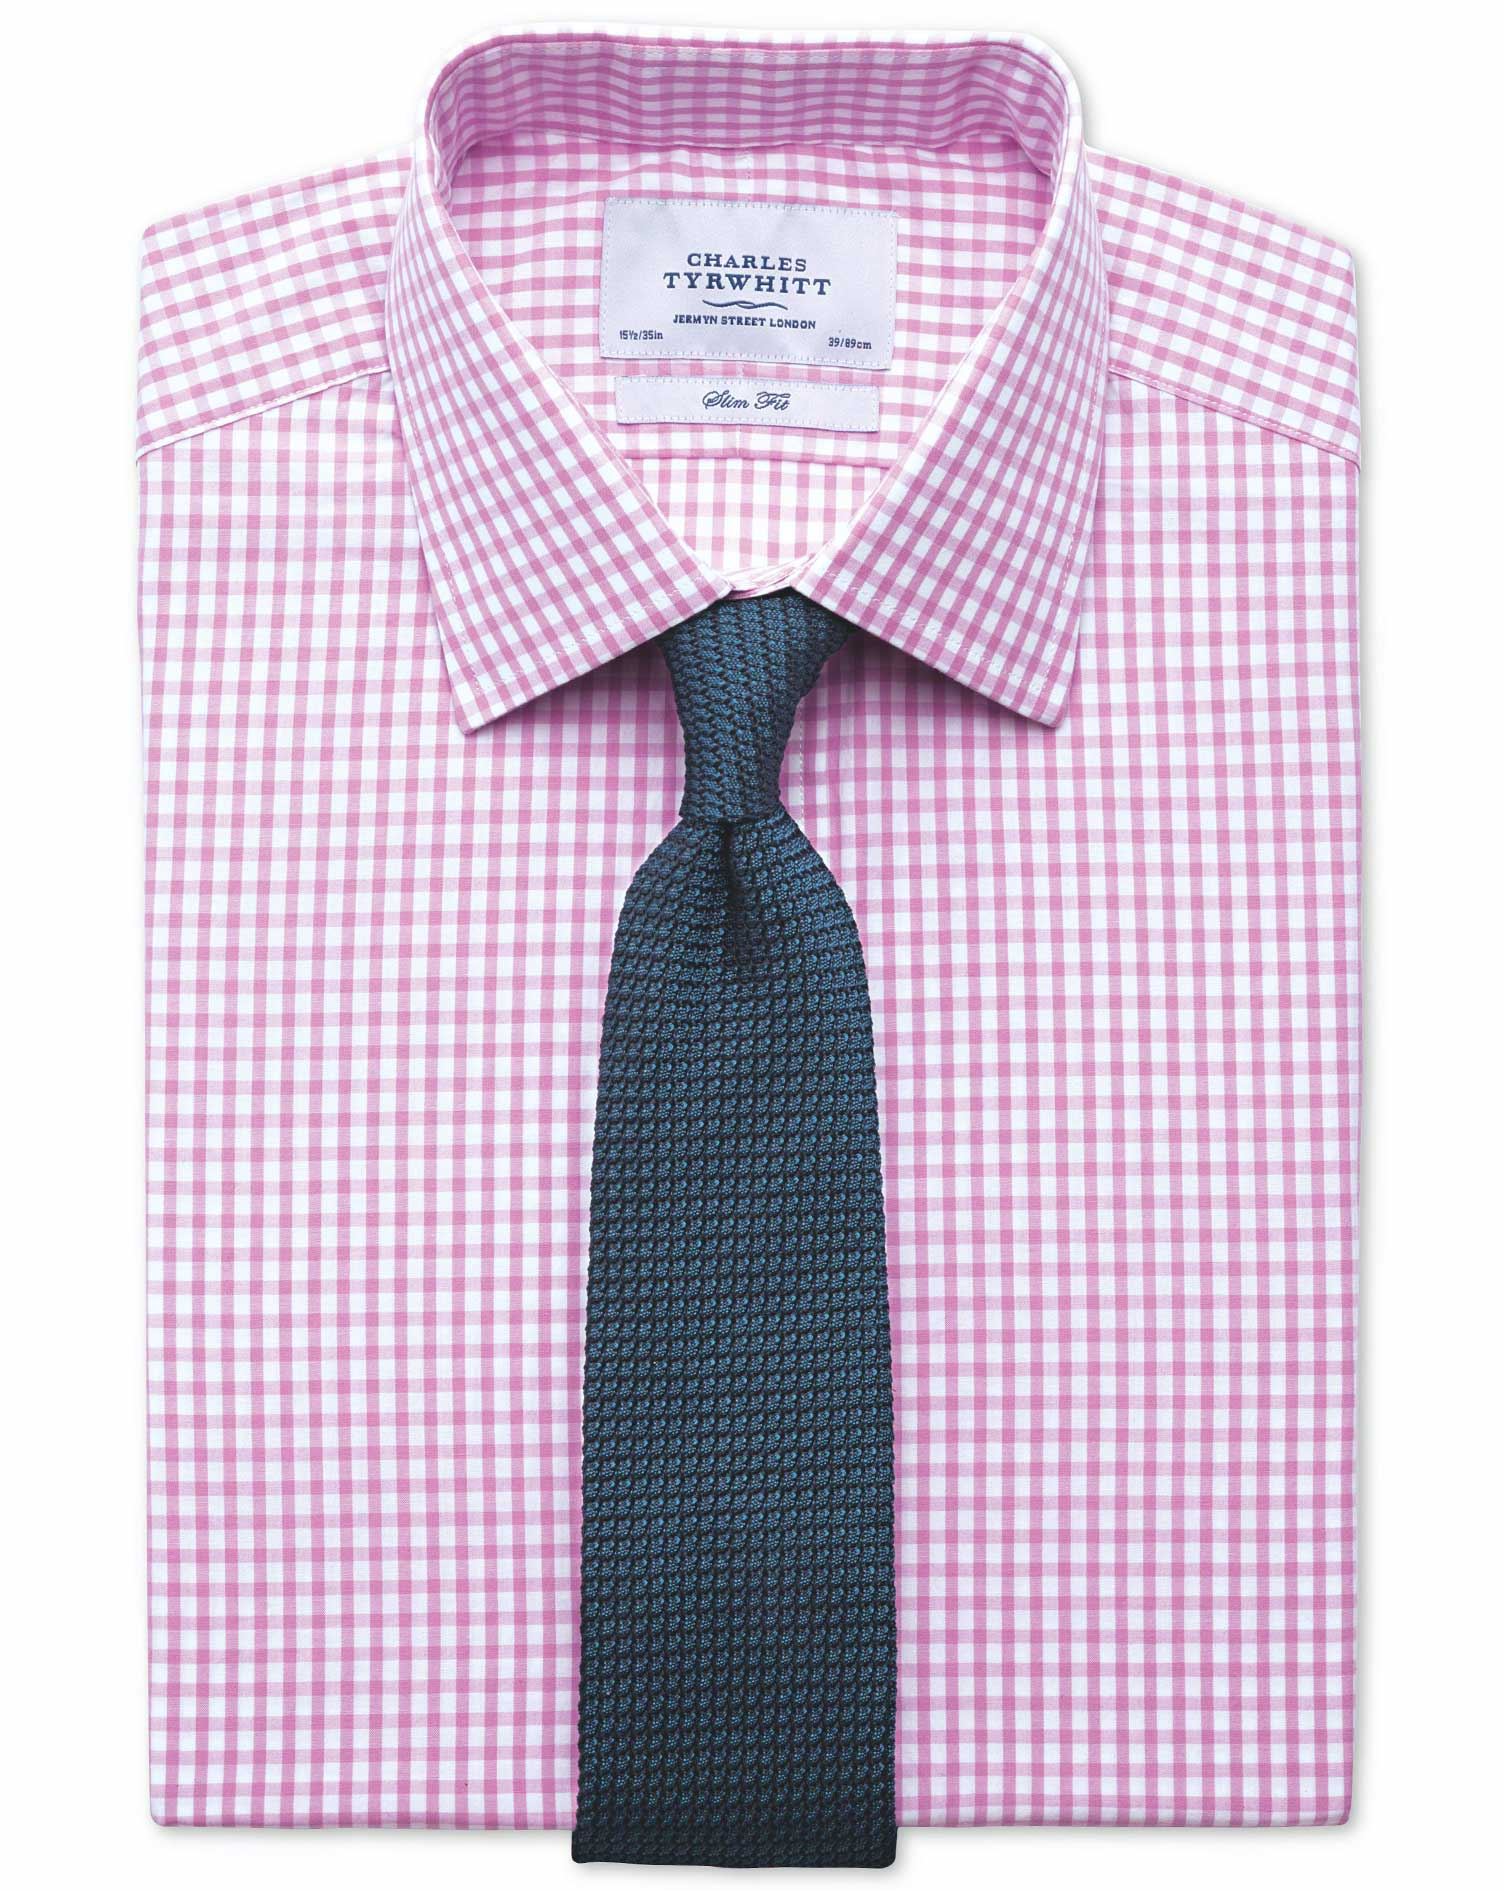 Classic Fit Gingham Pink Cotton Formal Shirt Double Cuff Size 15/35 by Charles Tyrwhitt